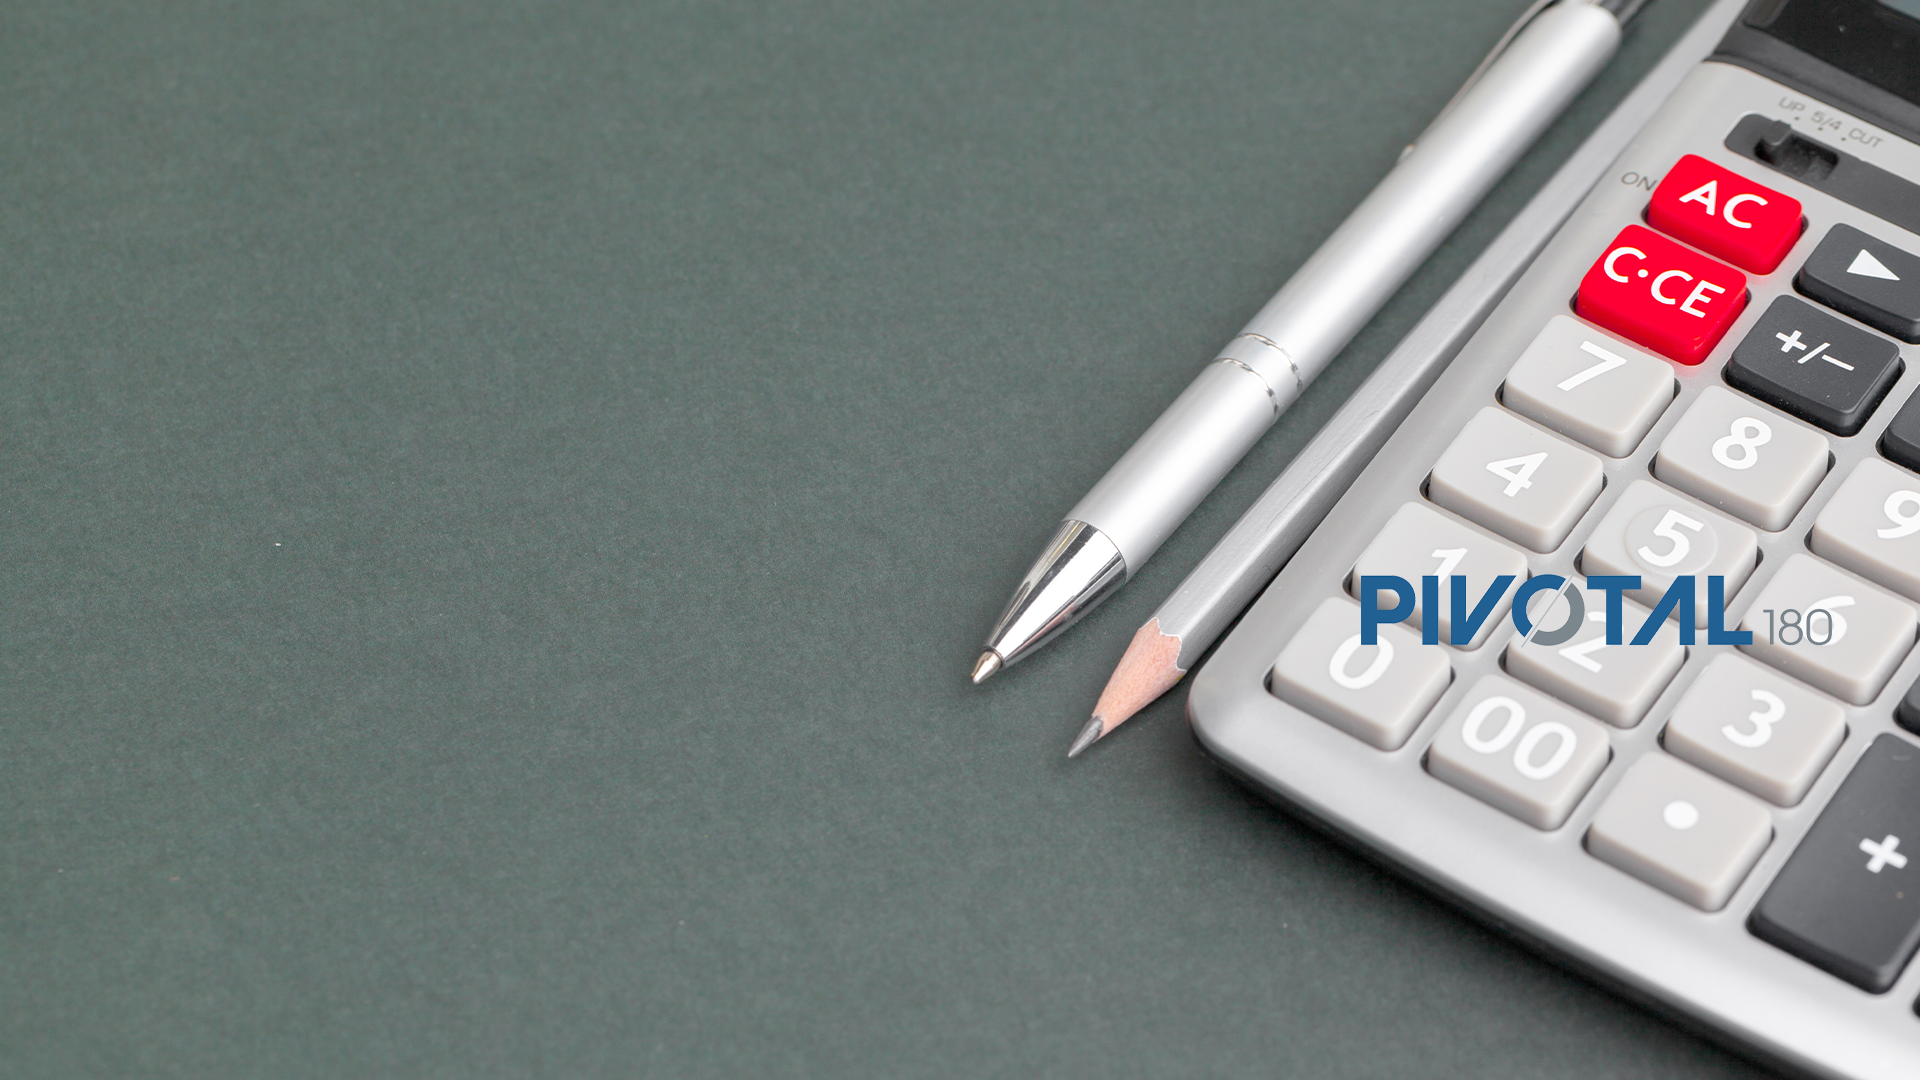 pen, pencil, calculator and Pivotal180 logo